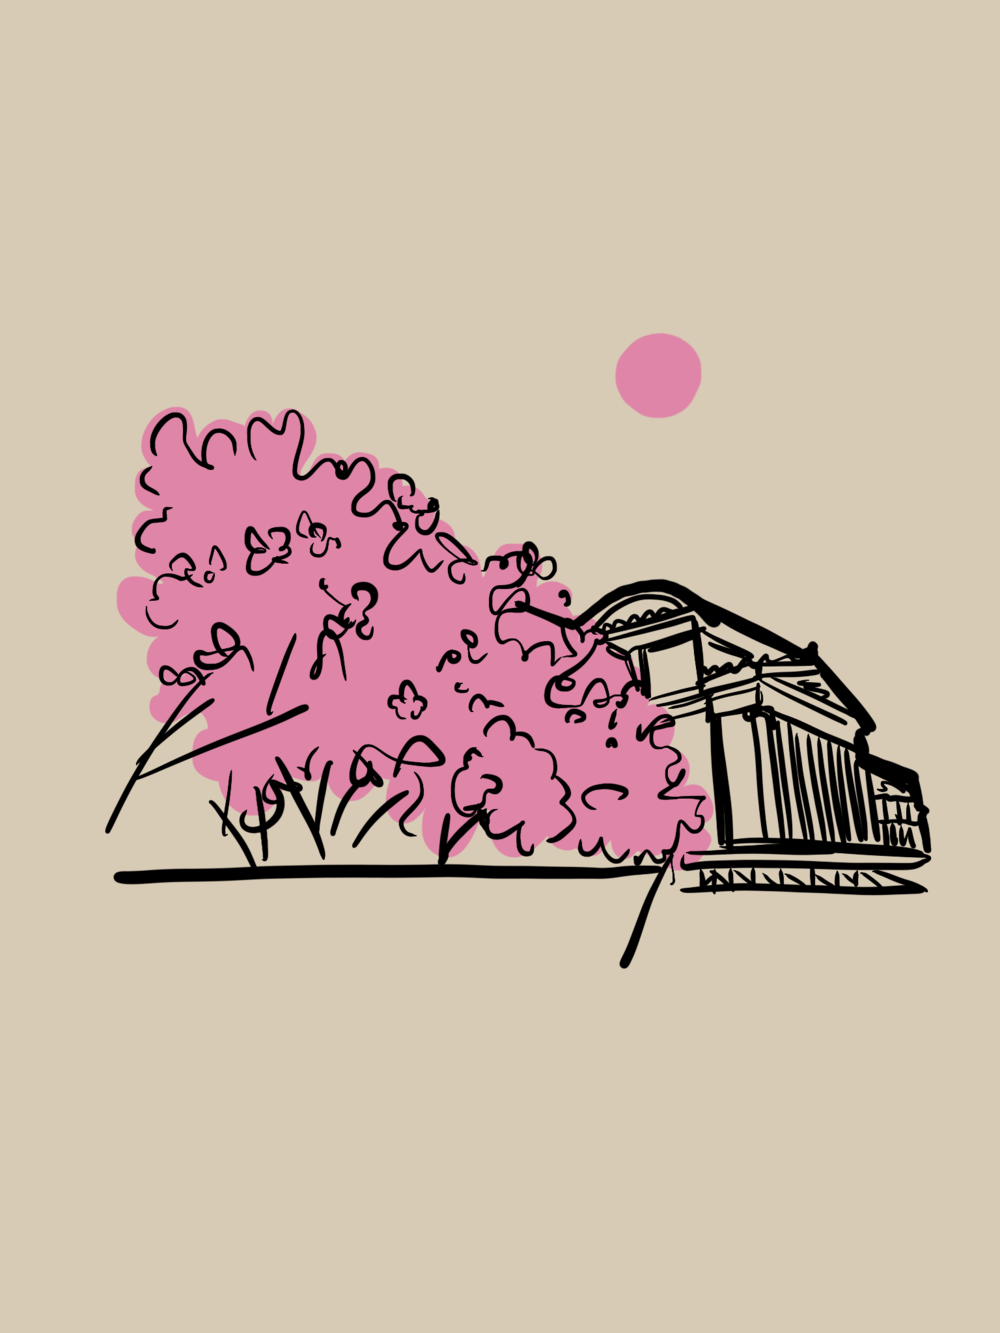 Brooklyn Museum - Digital Illustration